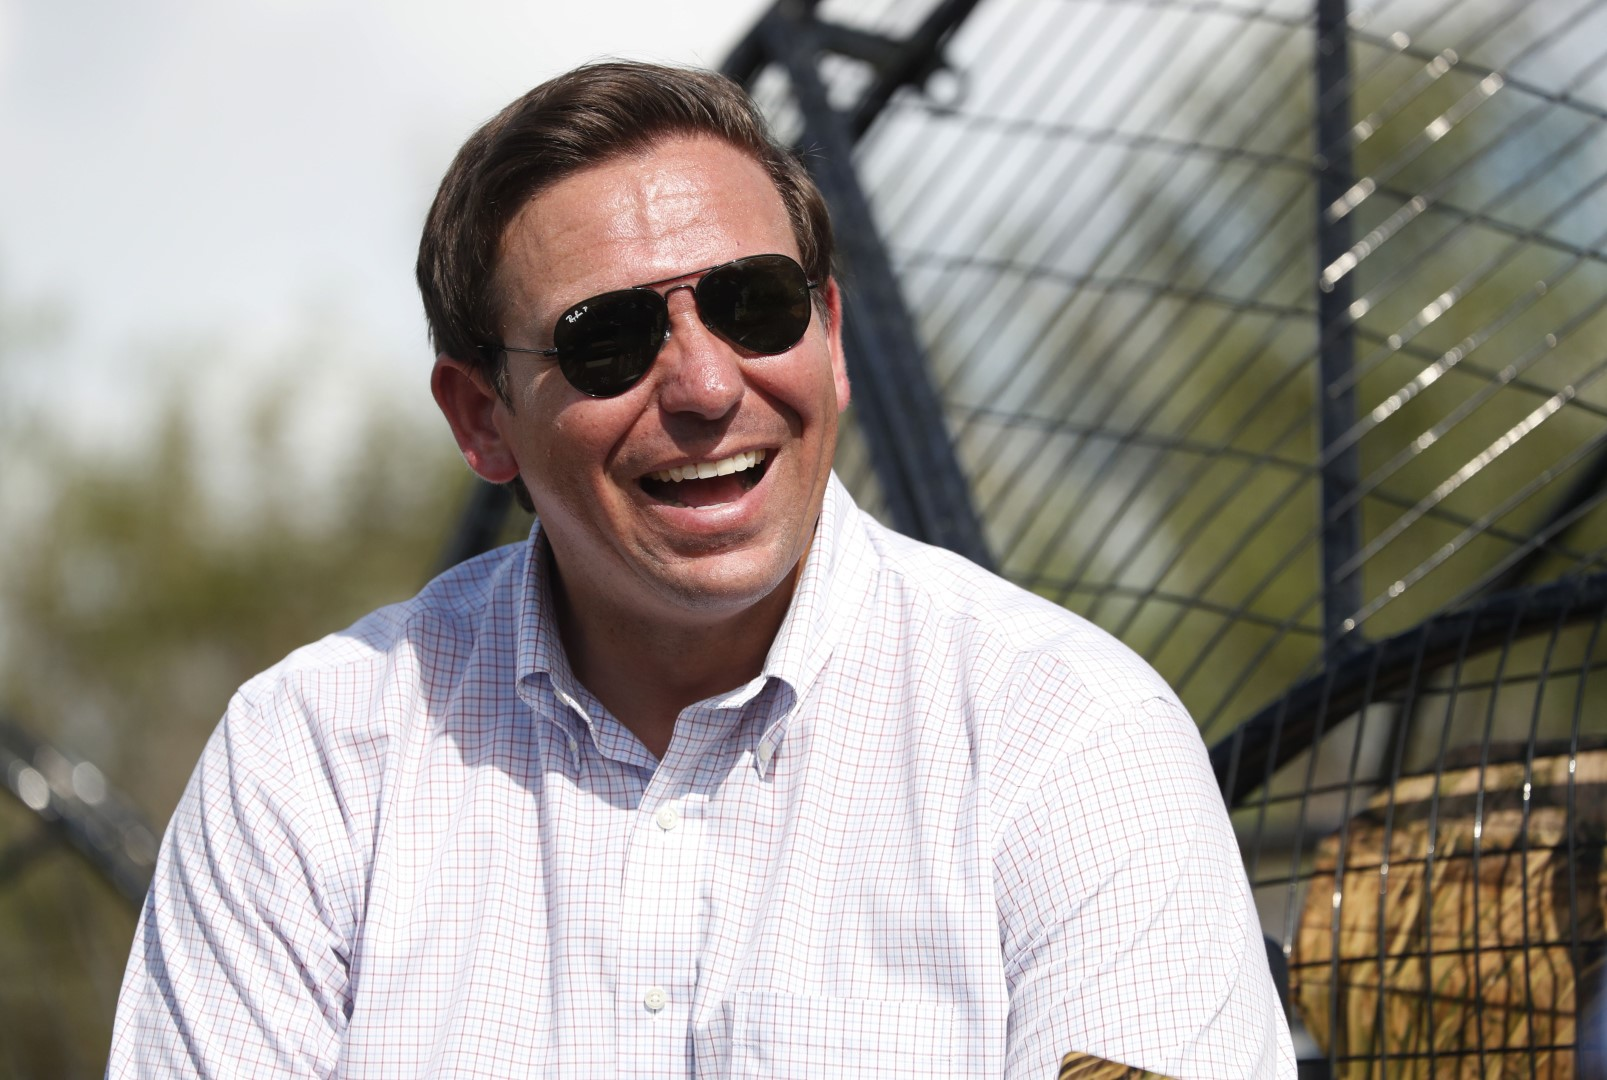 Ron-DeSantis-10.8.18-Large.jpg